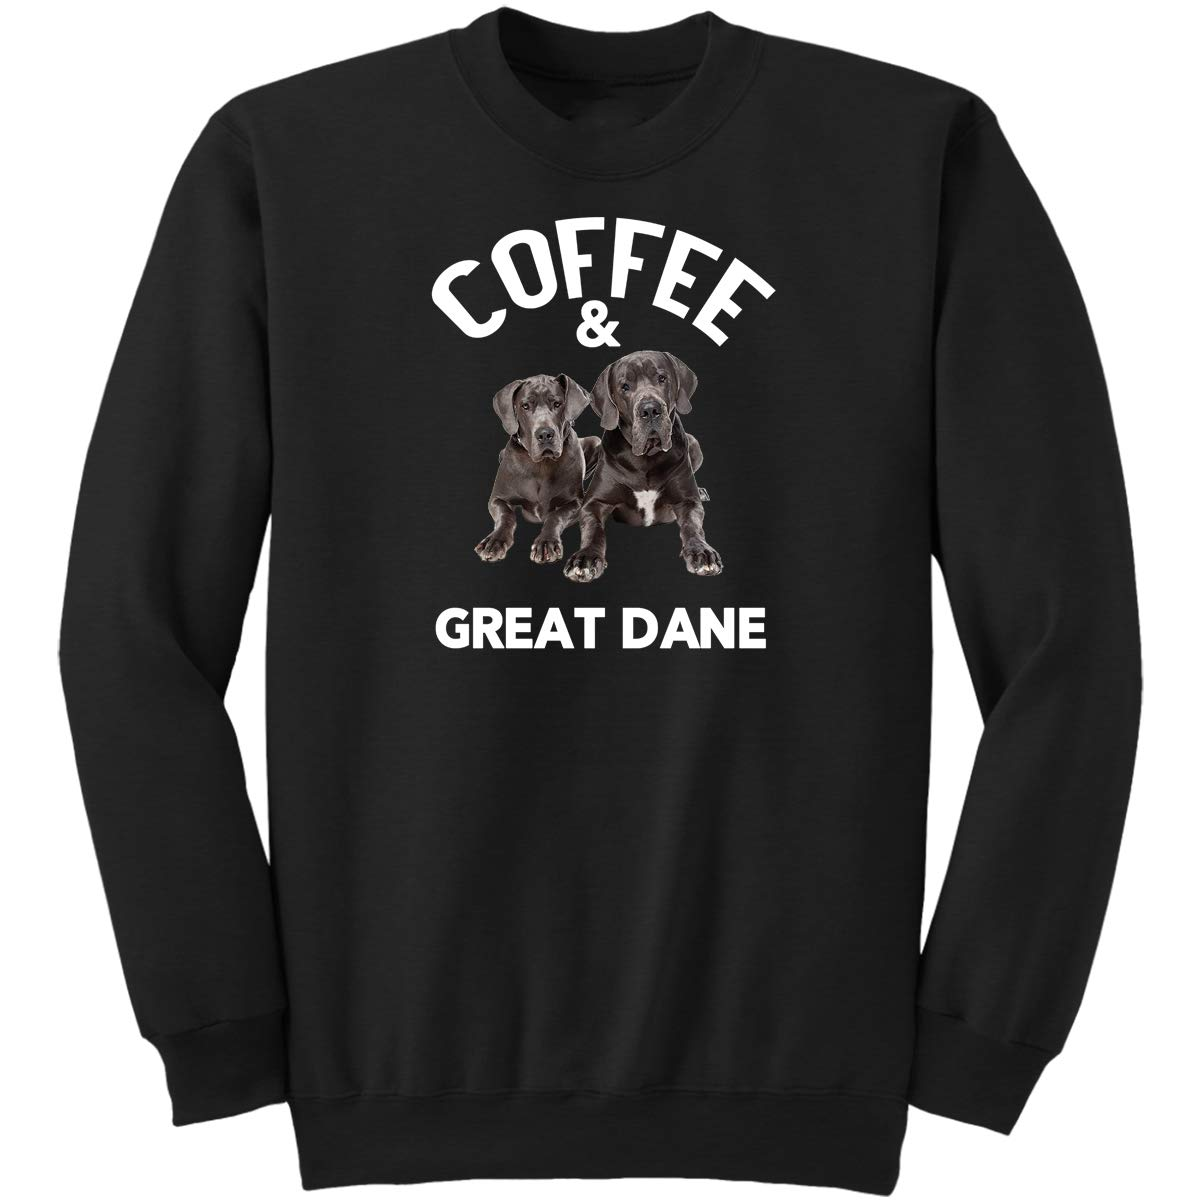 Coffee and Great Danes Funny Great Dane Dog Saying Gifts for Pet Sweatshirt